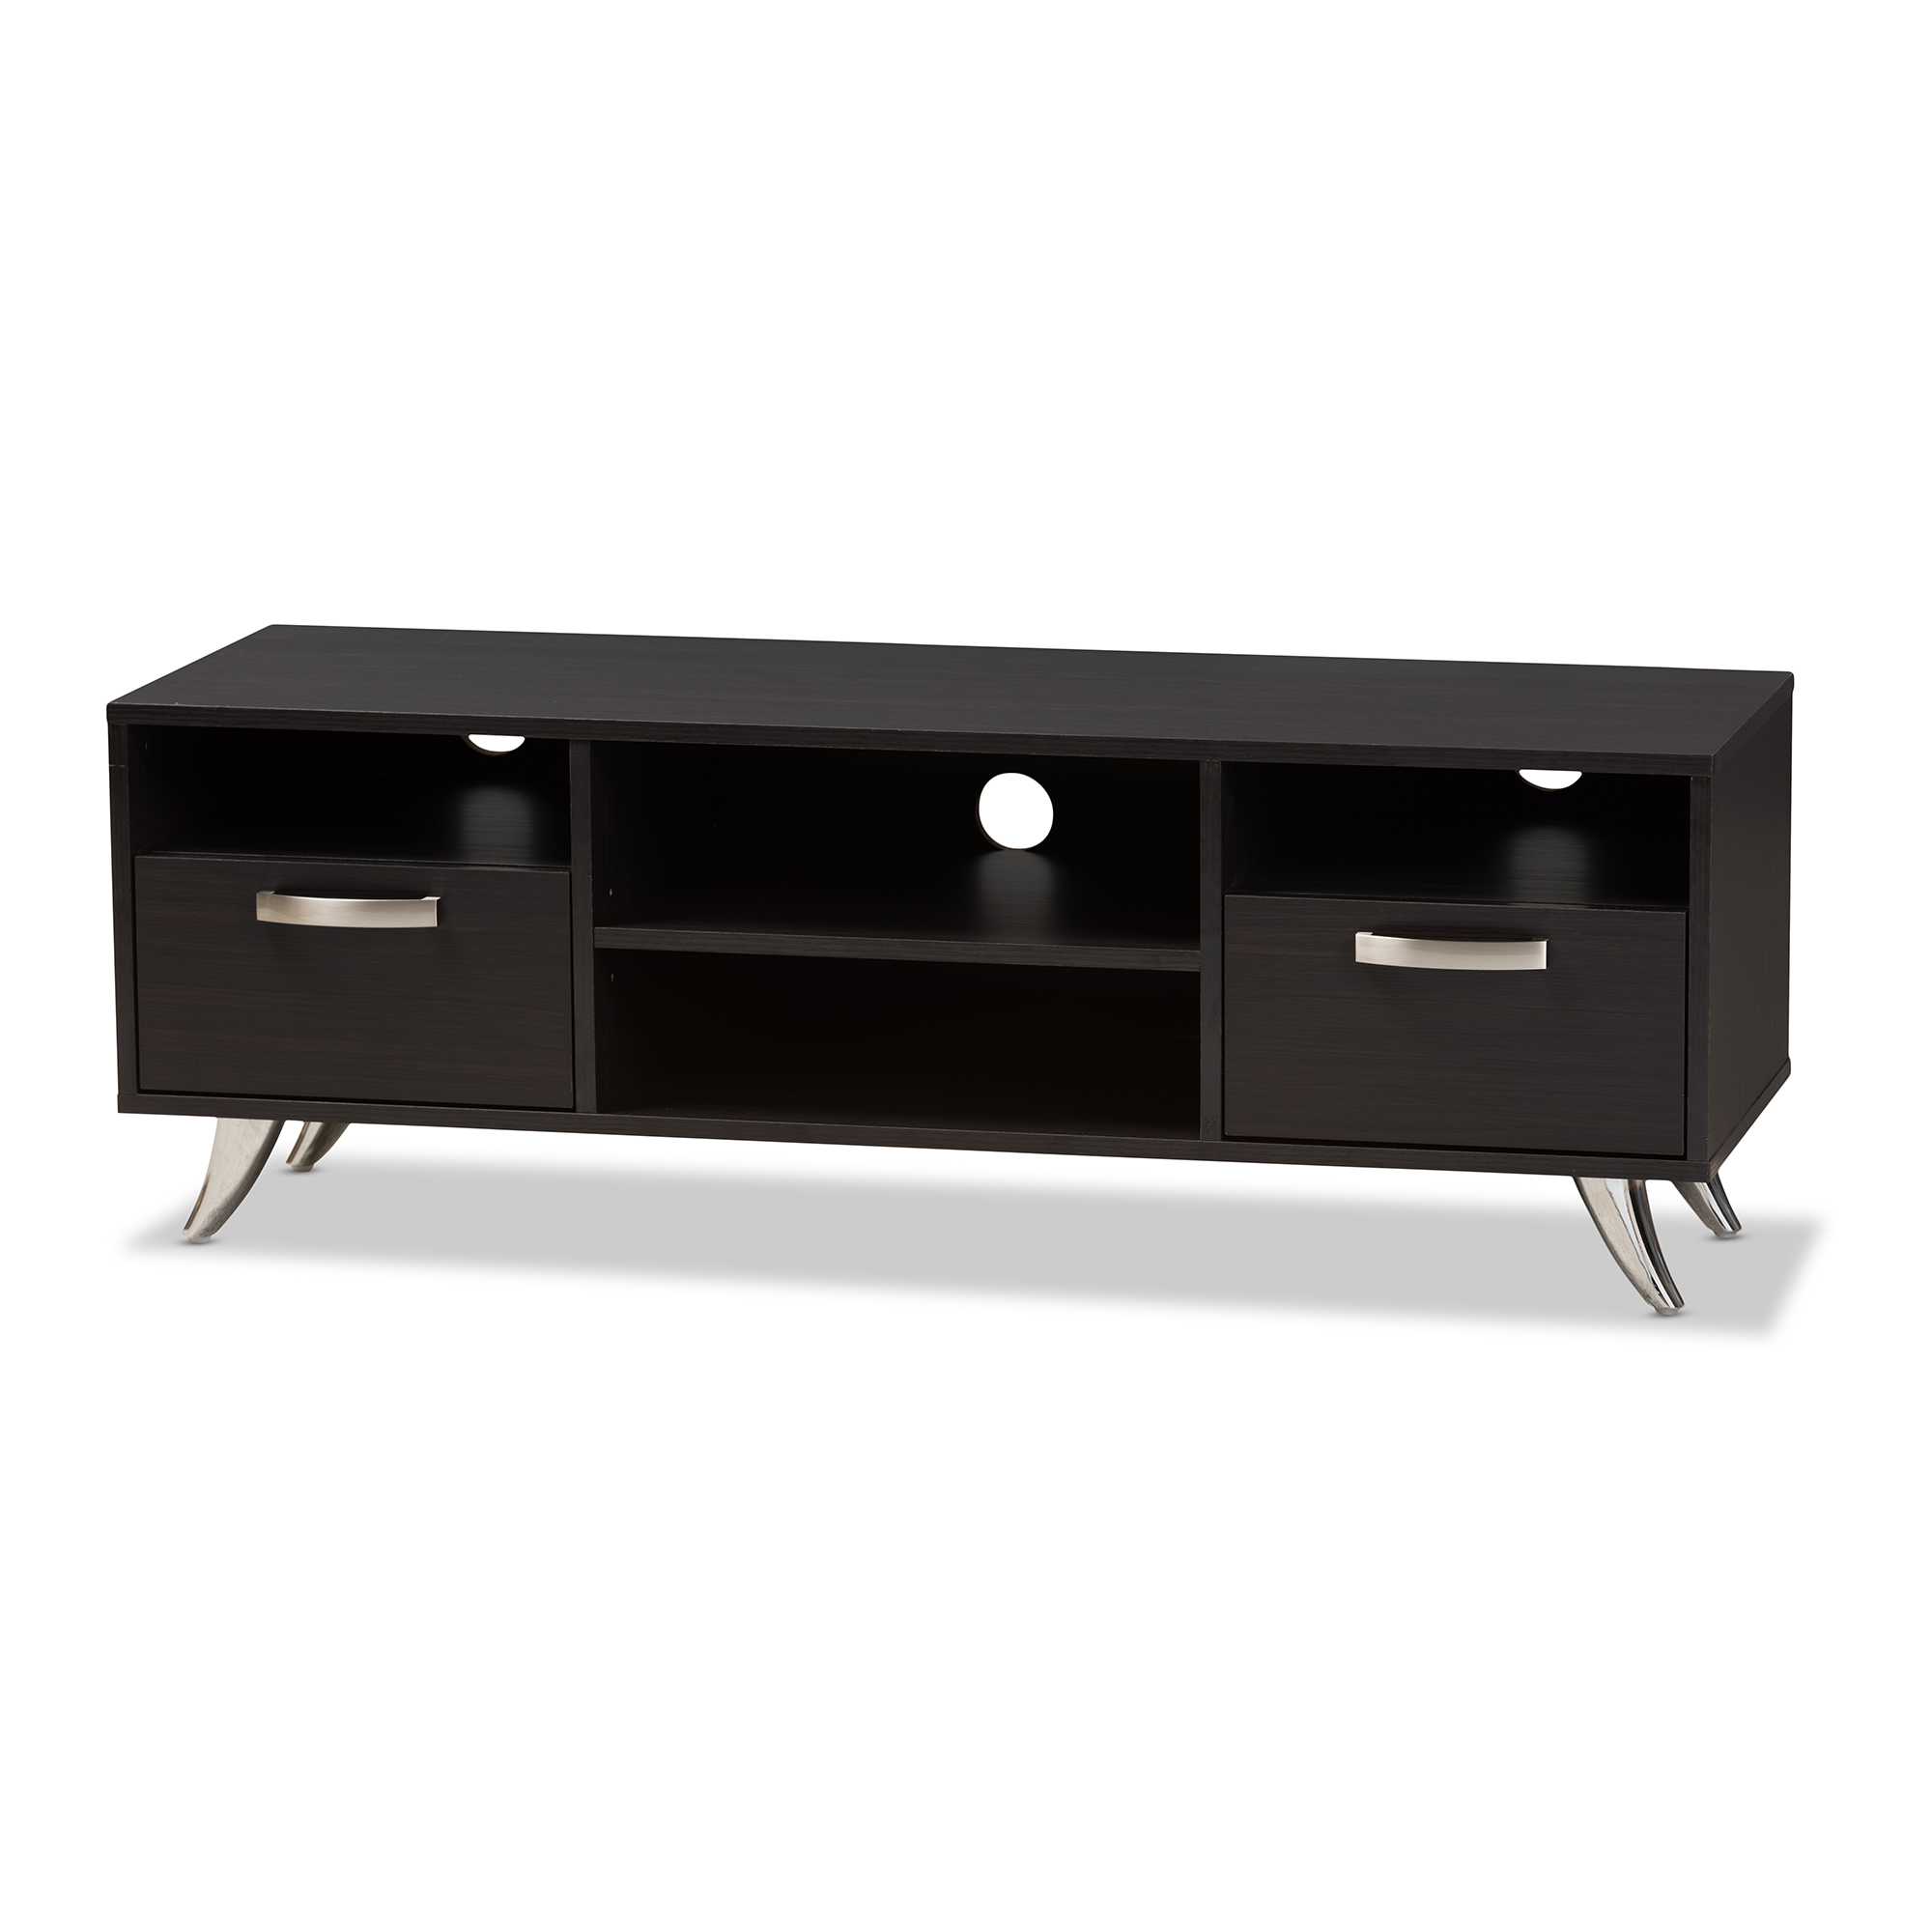 Baxton studio warwick modern and contemporary espresso brown finished wood tv stand